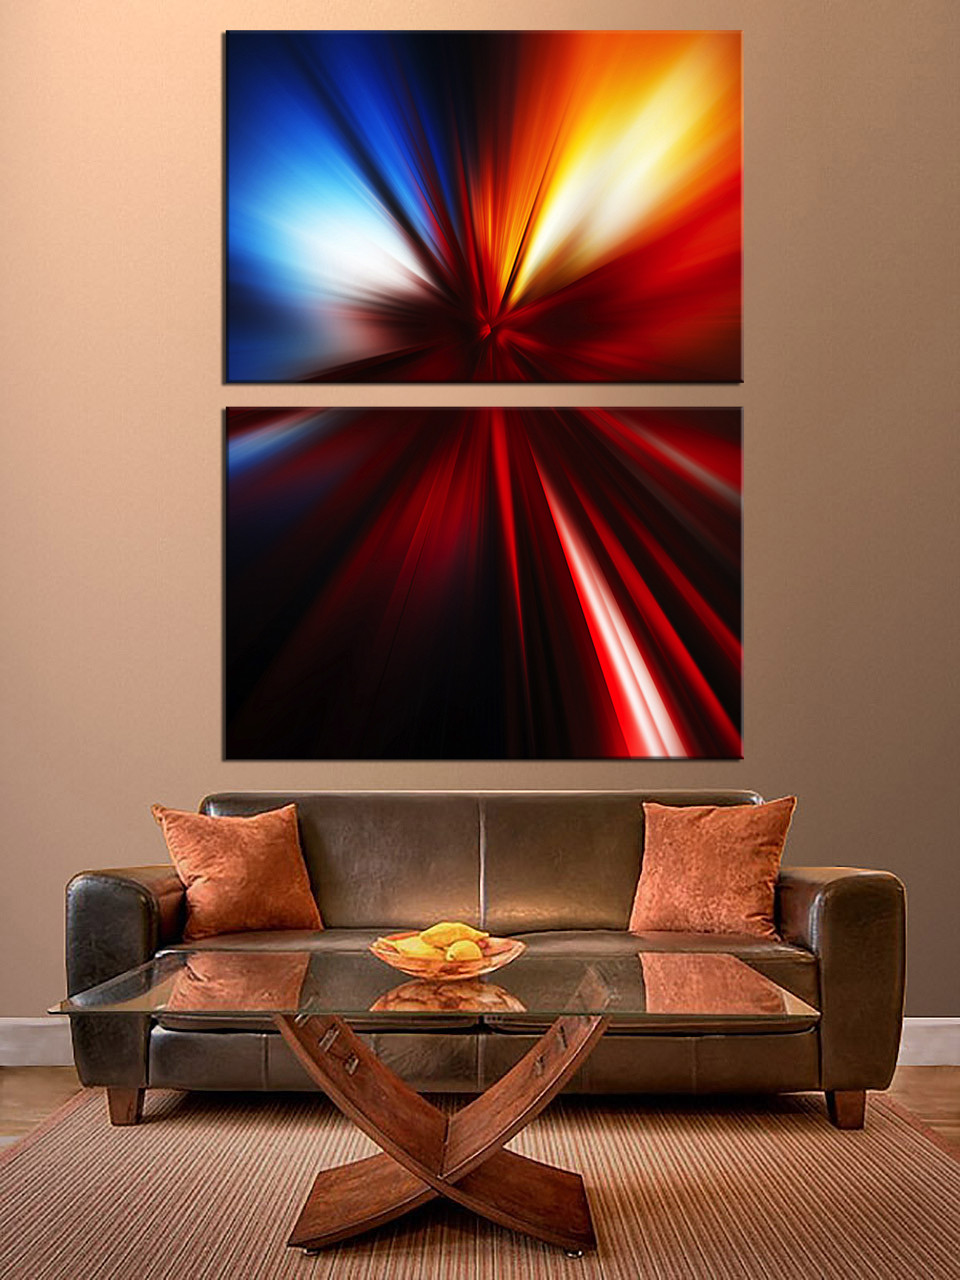 Multi Panel Canvas Wall Art 2 piece canvas wall art, red abstract photo canvas, abstract multi